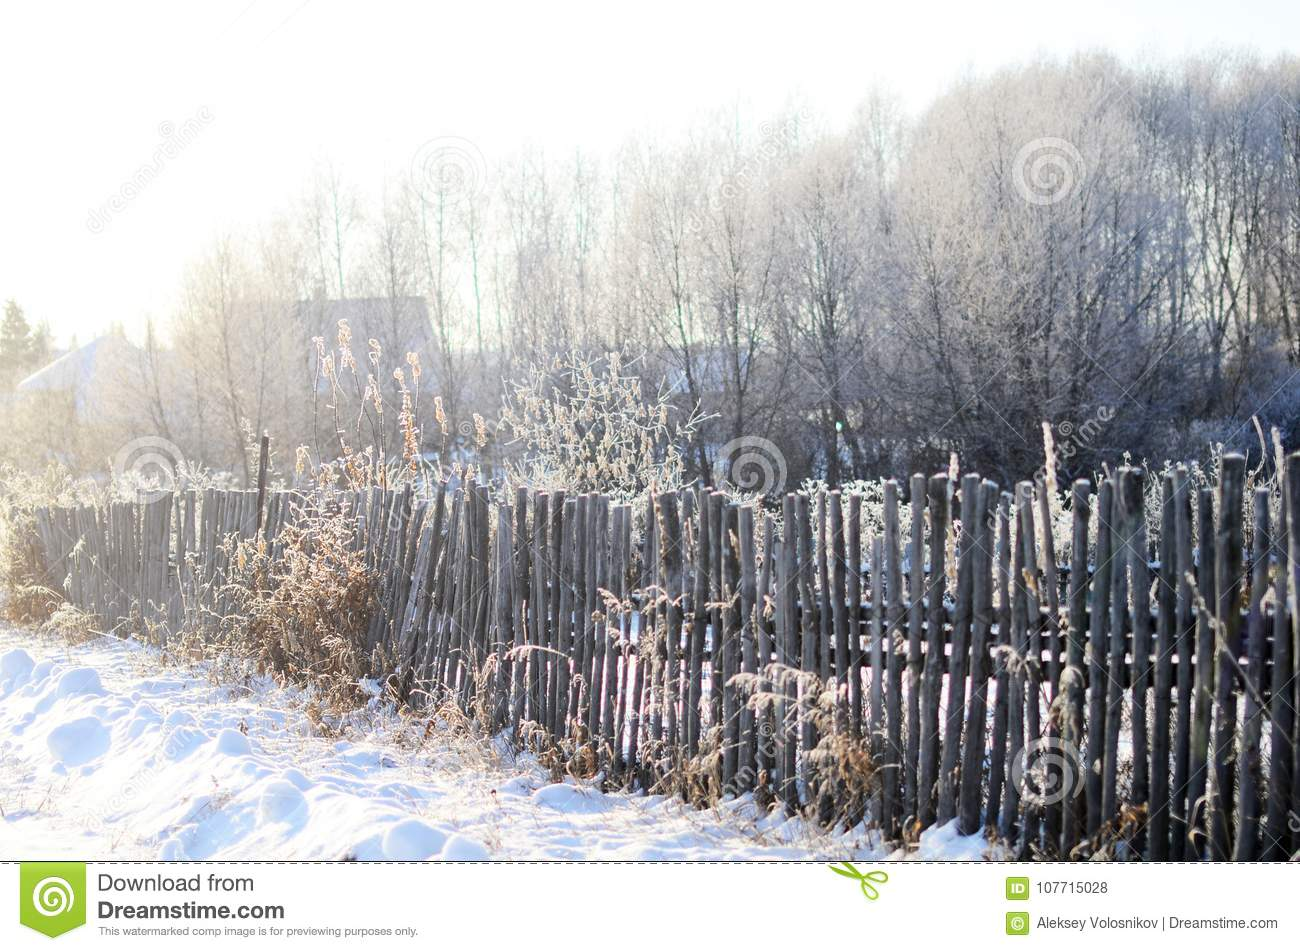 A fence made of wooden twigs